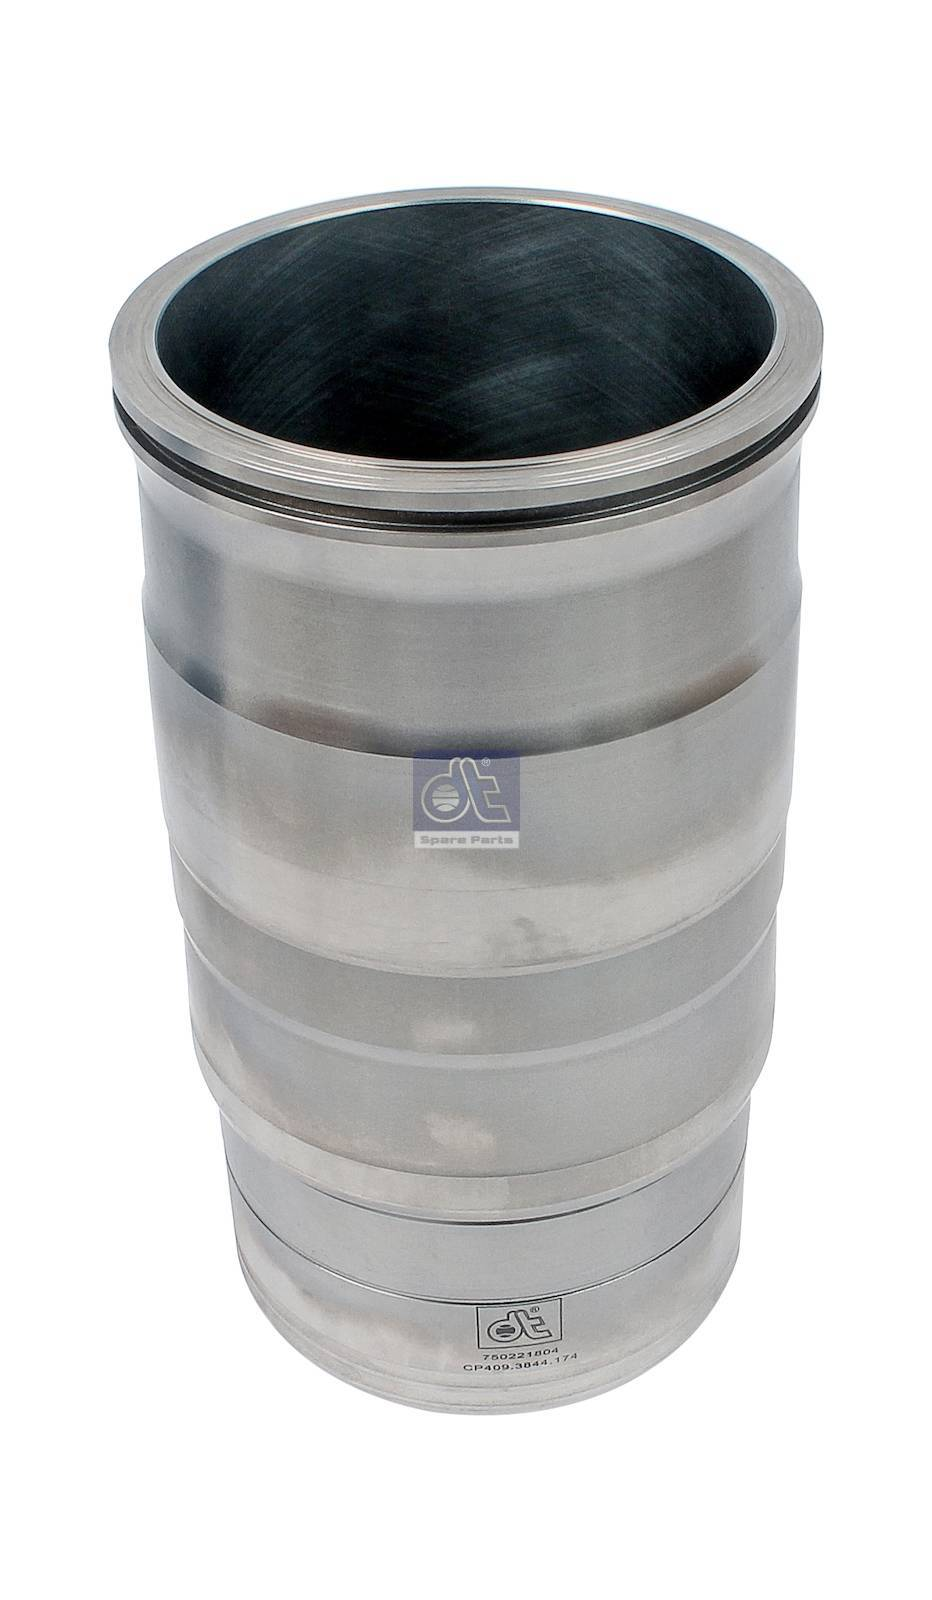 Cylinder liner, without seal rings